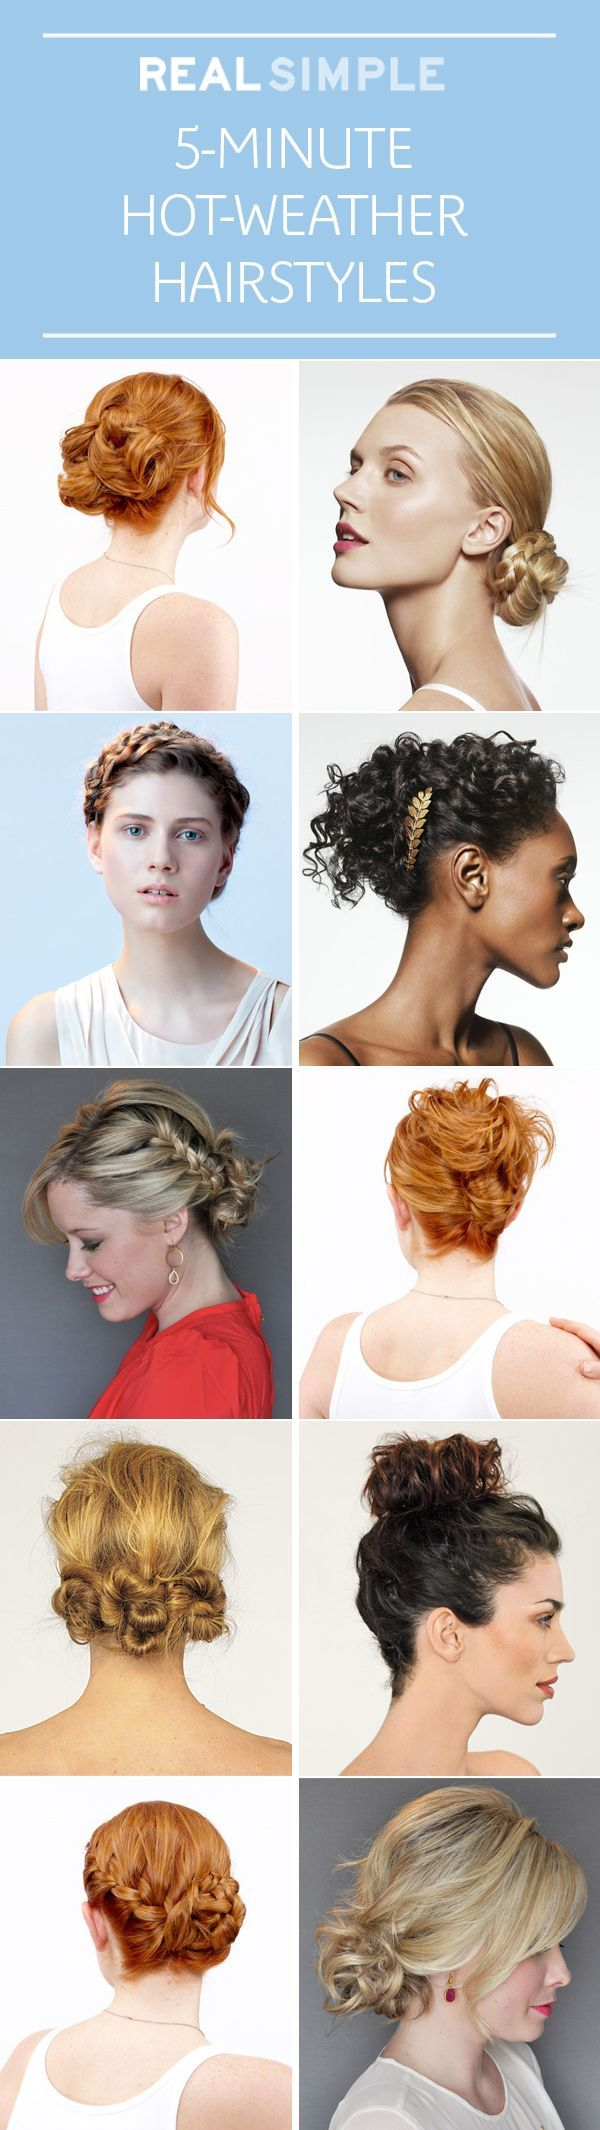 5-minute hot-weather hairstyles (seriously) | beauty, friends and